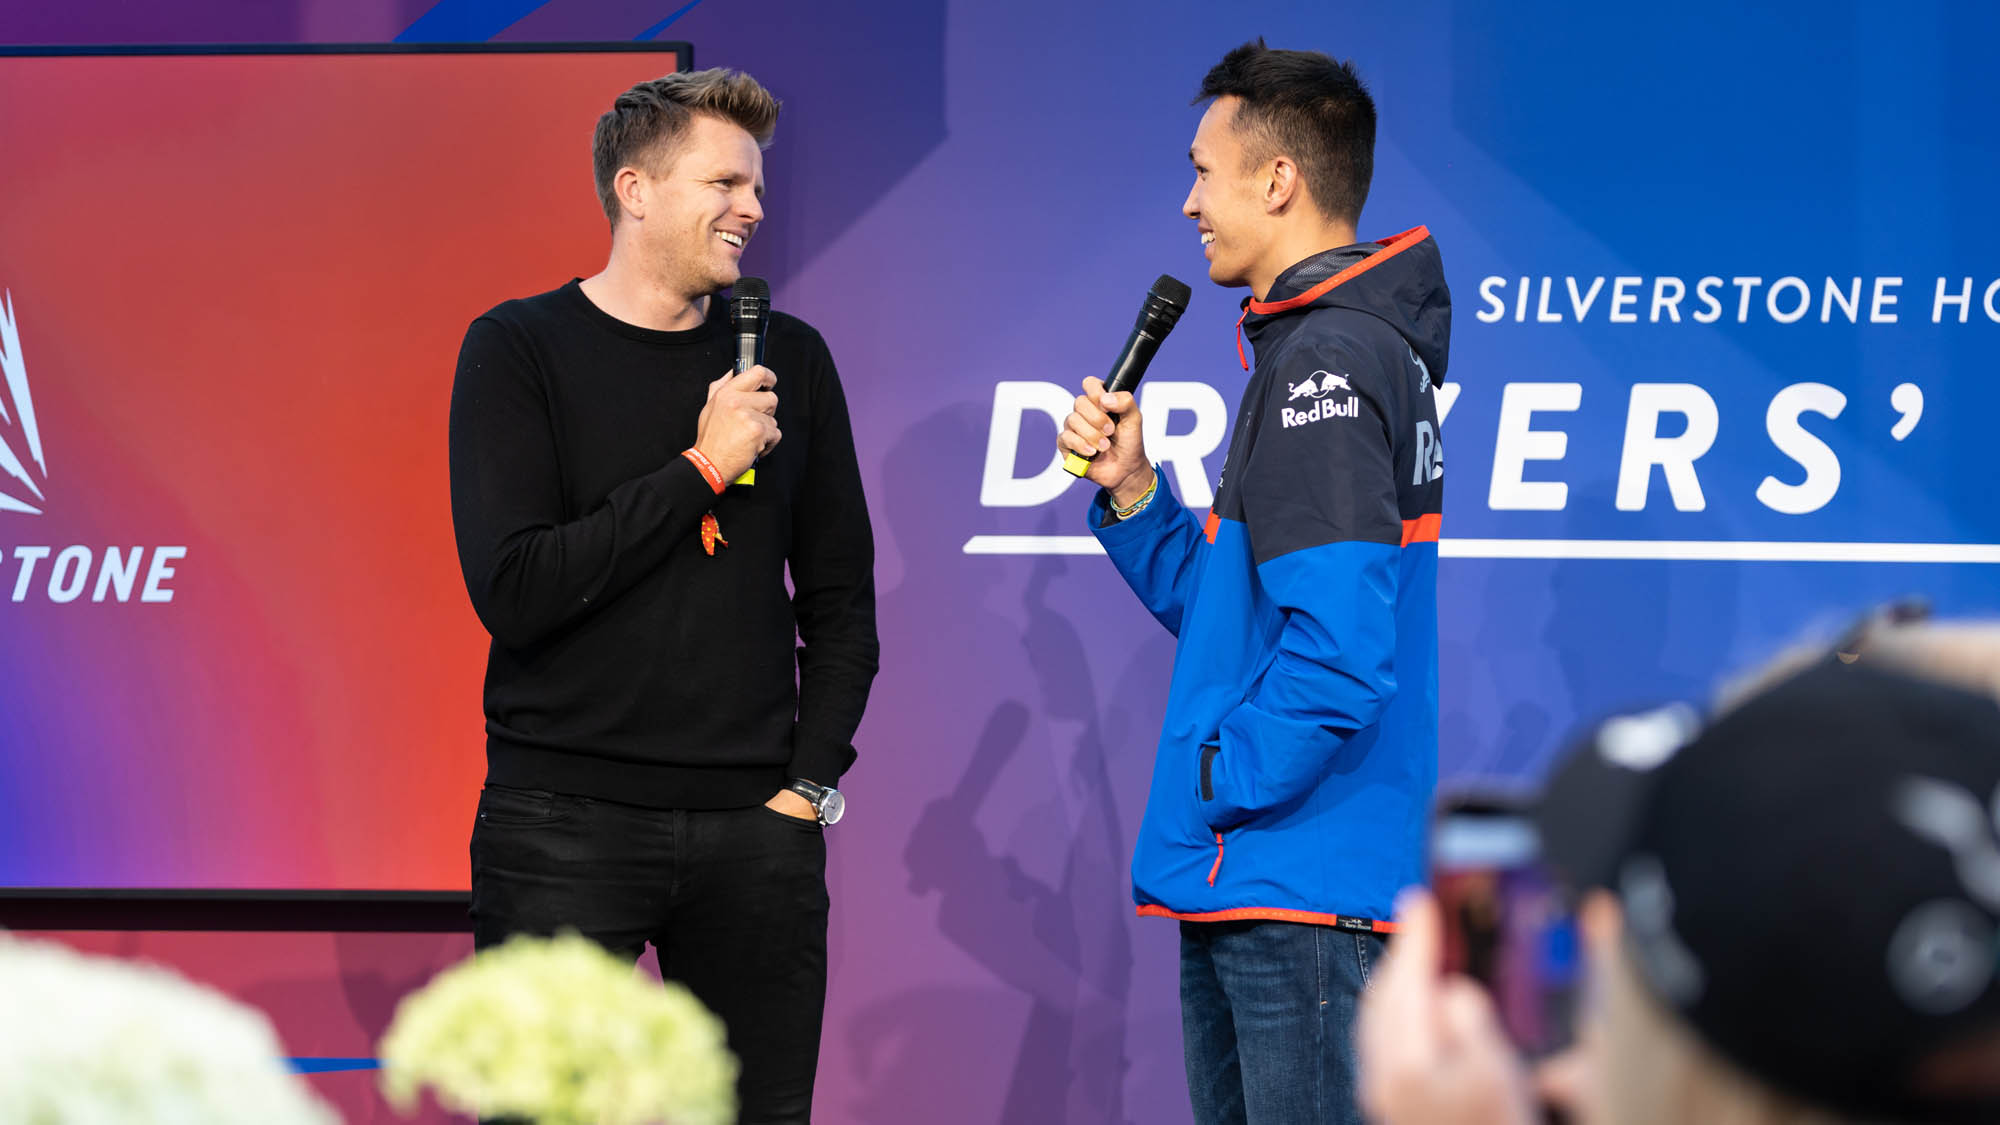 190720_Silverstone_2019_04_Drivers Lounge_Interviews-7.jpg